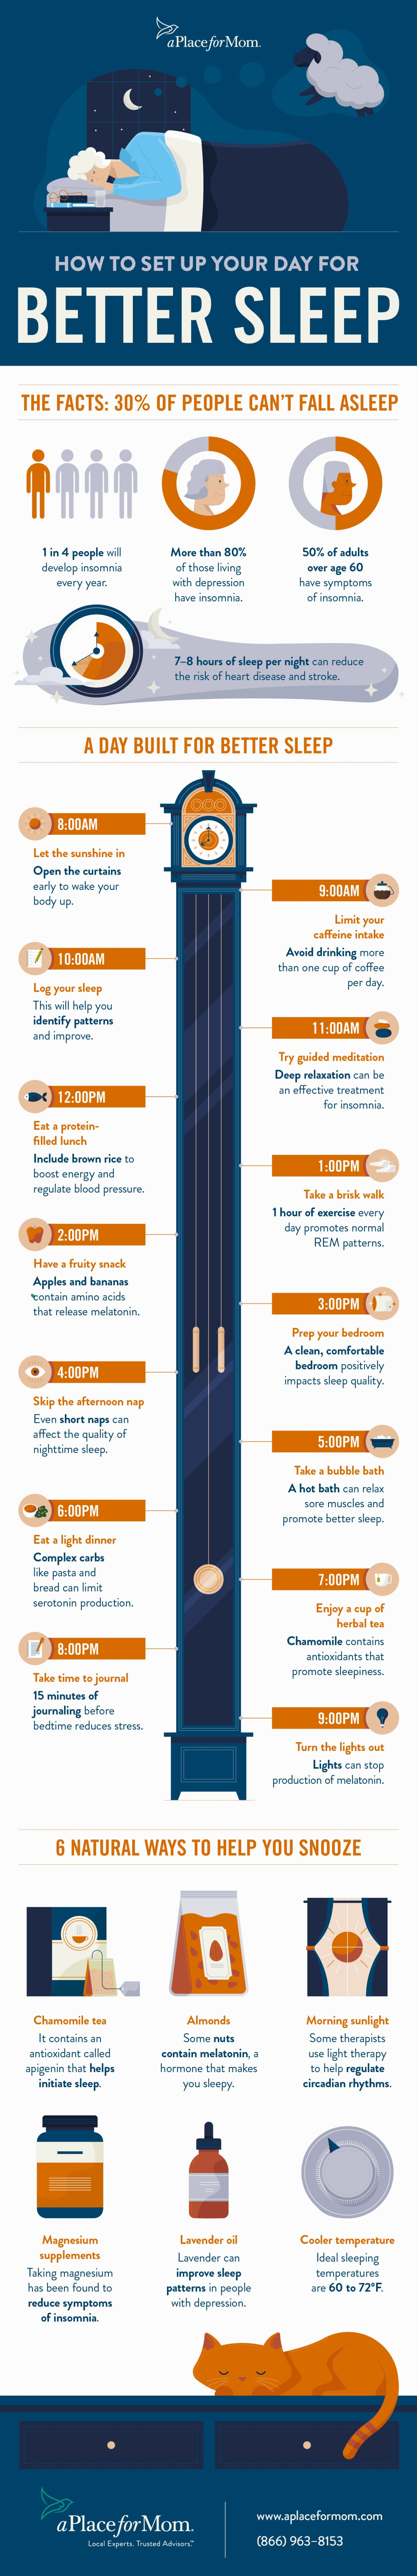 How to Plan Your Day for a Better Night's Sleep